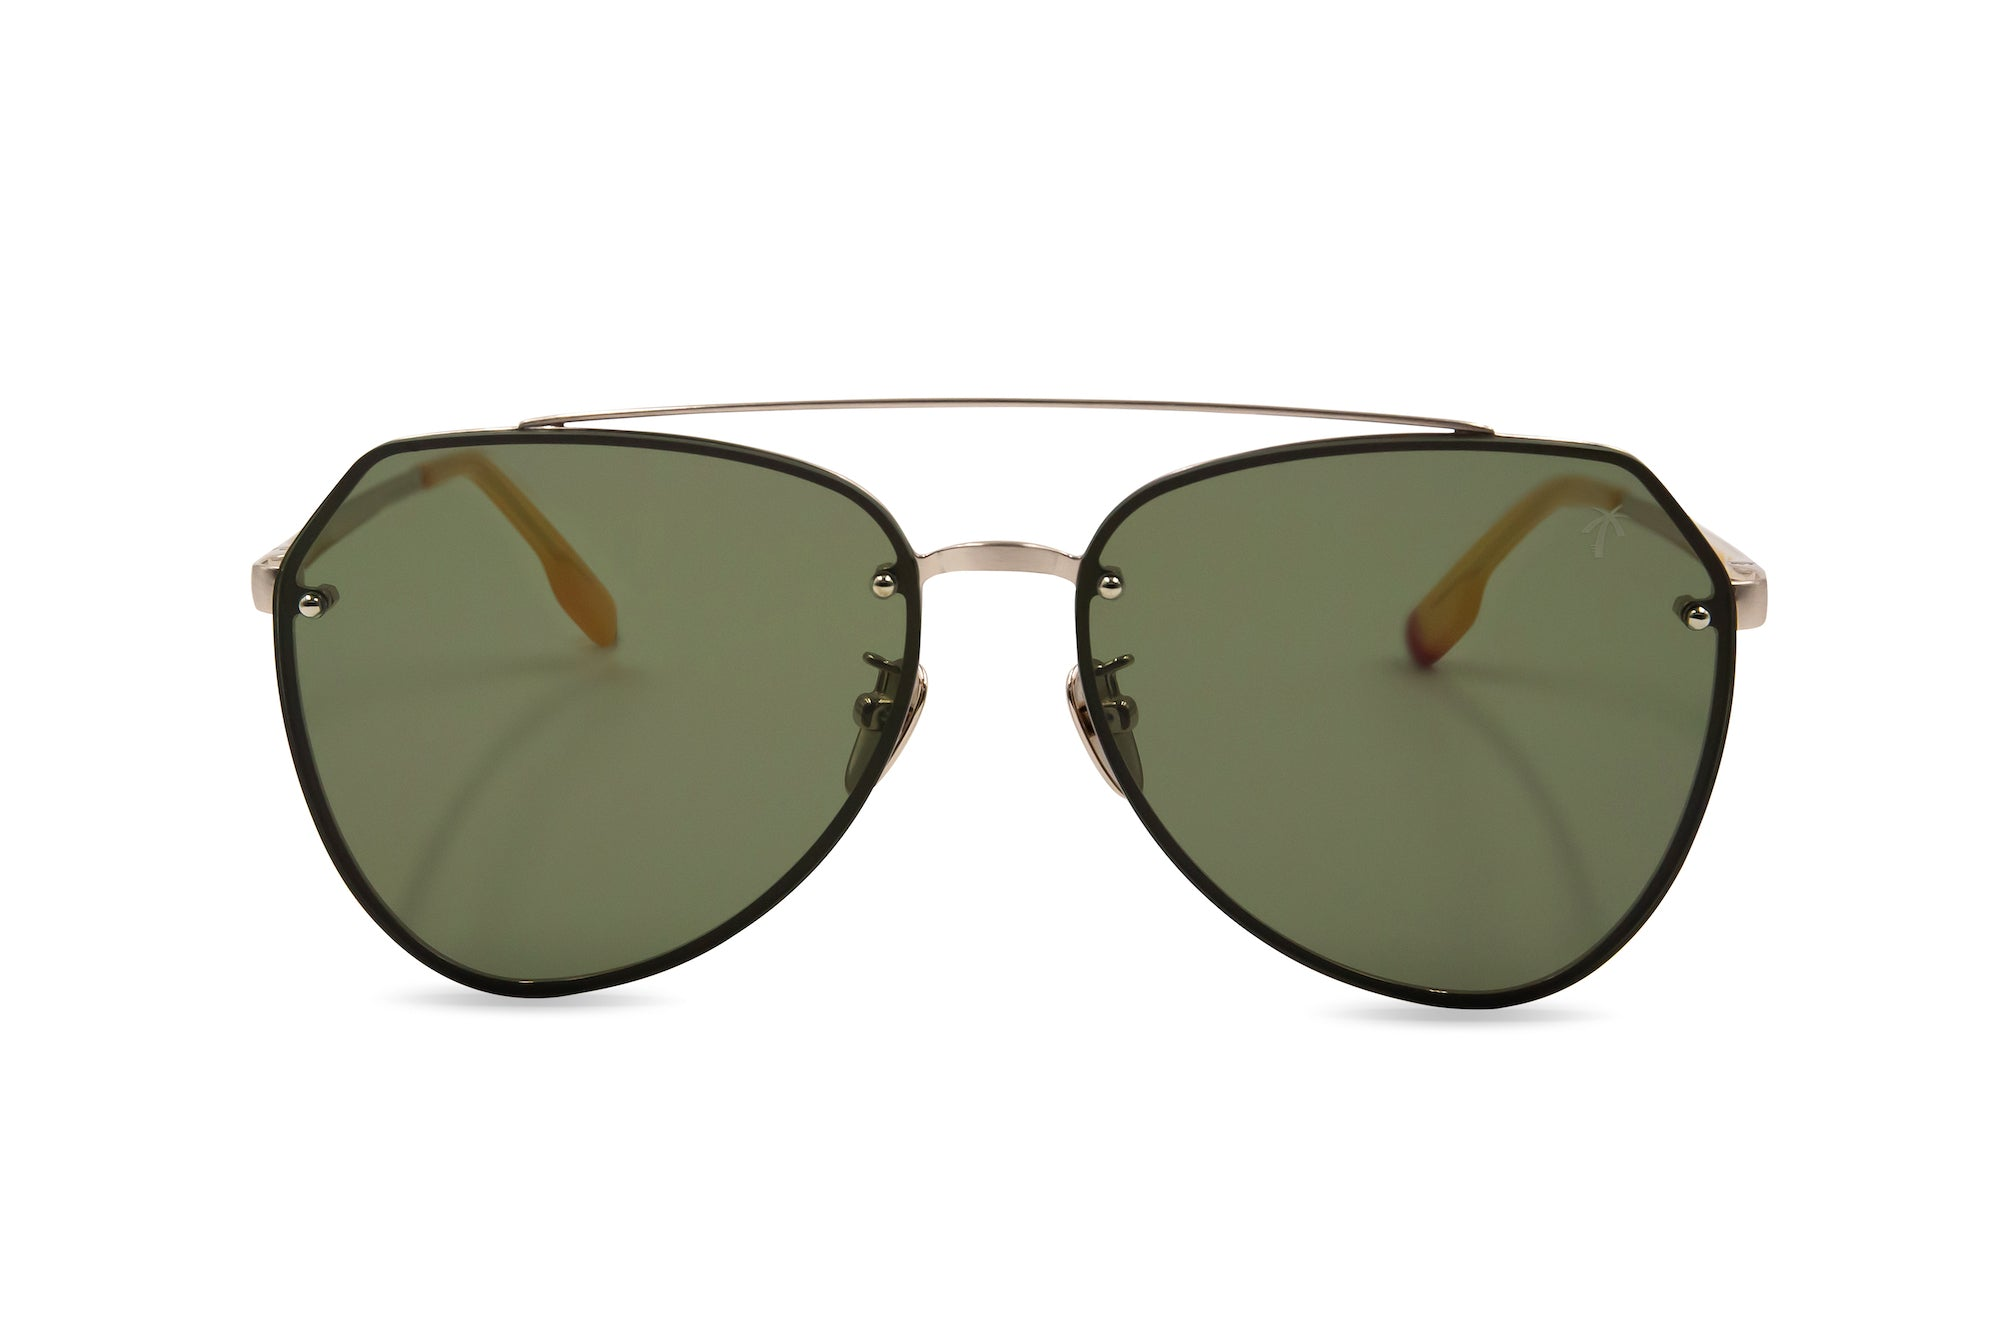 Doheny in Green - Peppertint - Designer sunglasses